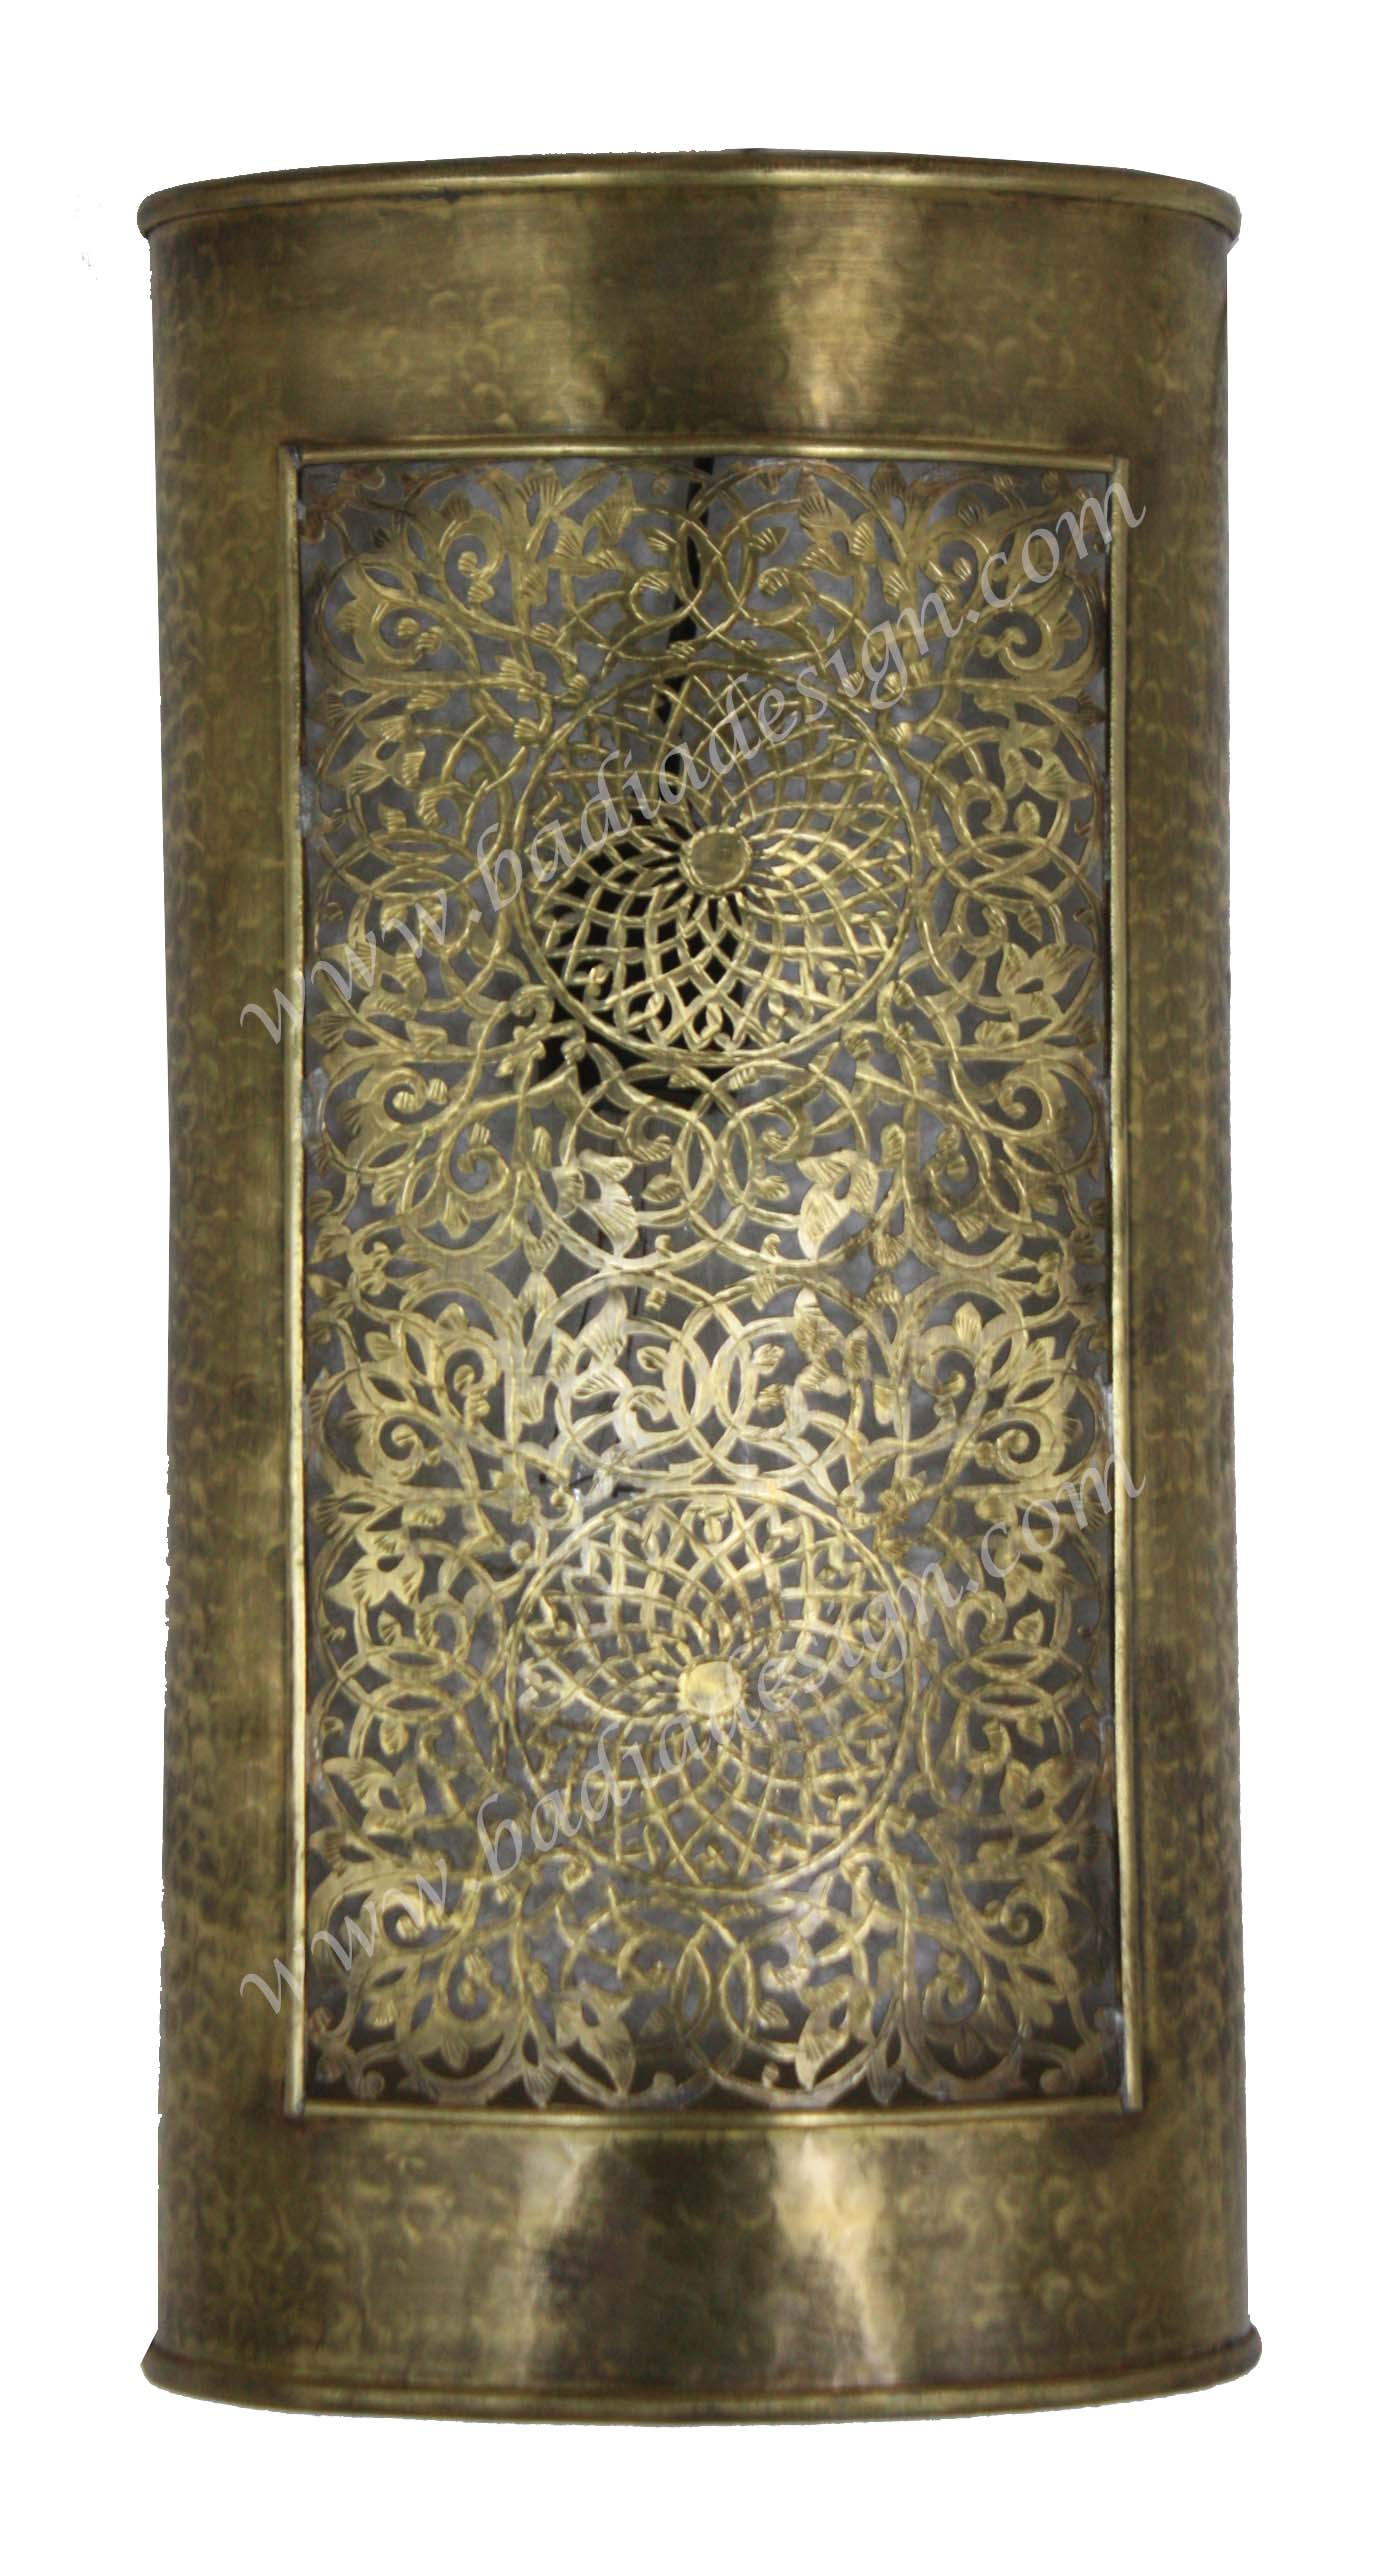 moroccan-rectangular-shaped-brass-wall-sconce-badia-deisgn-wl210-2.jpg